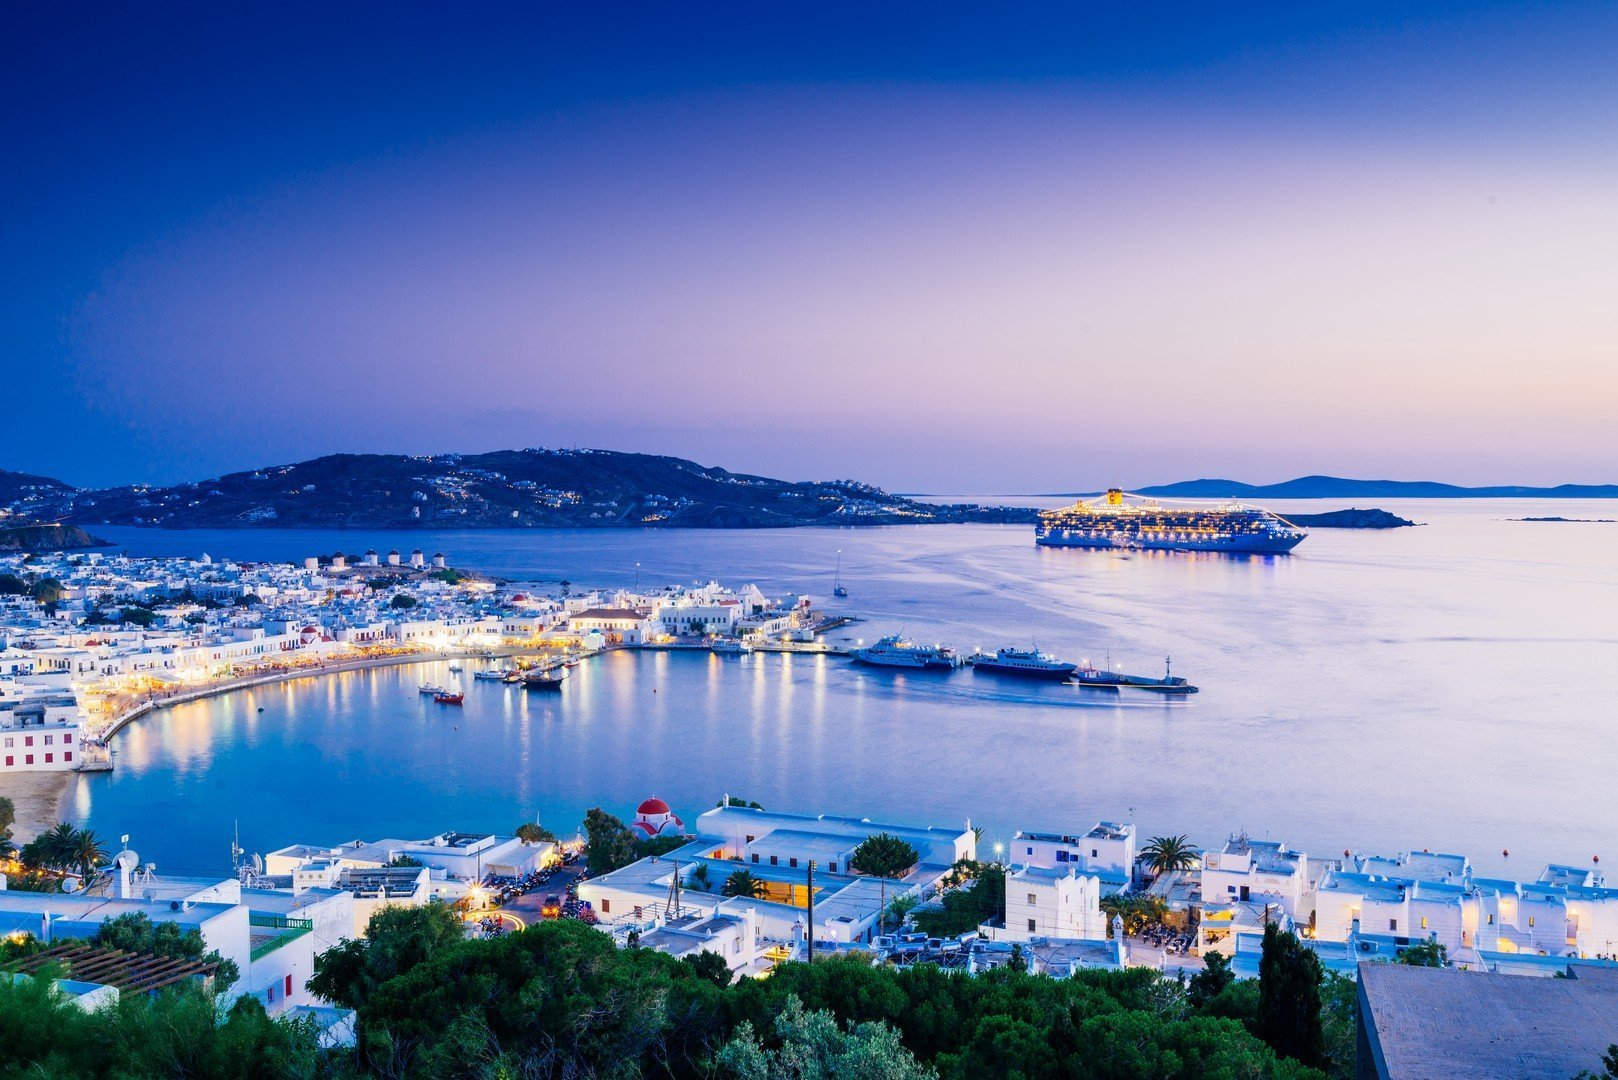 Beatiful twilight over Mykonos town, Mykonos island, Cyclades archipelago, Greece shutterstock_547490086